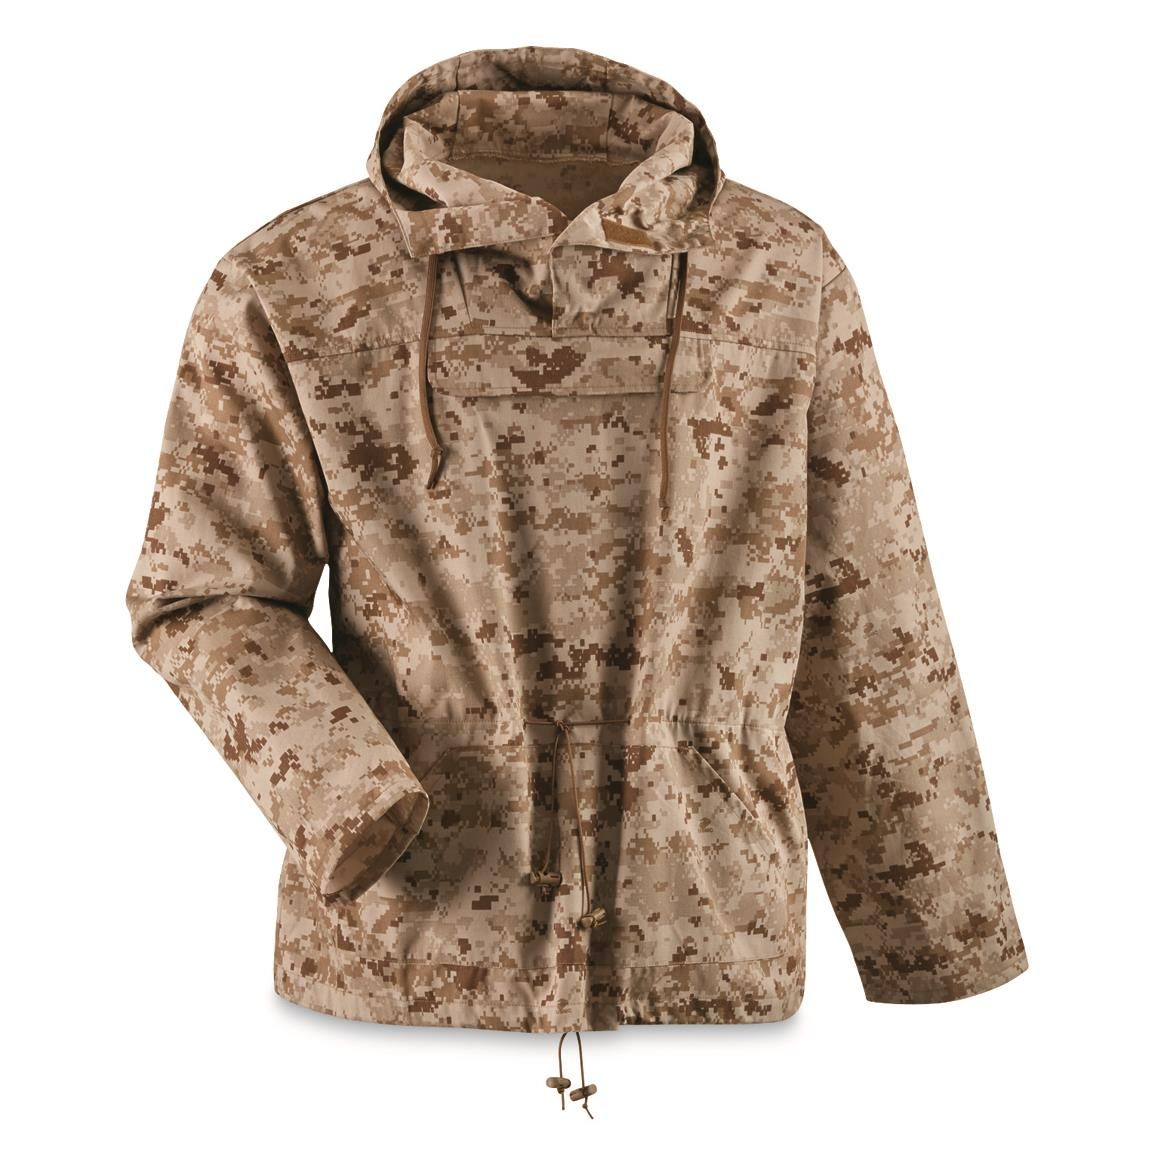 pin by raymond on gear in 2020 anorak jacket anorak on uninsulated camo overalls for men id=50348